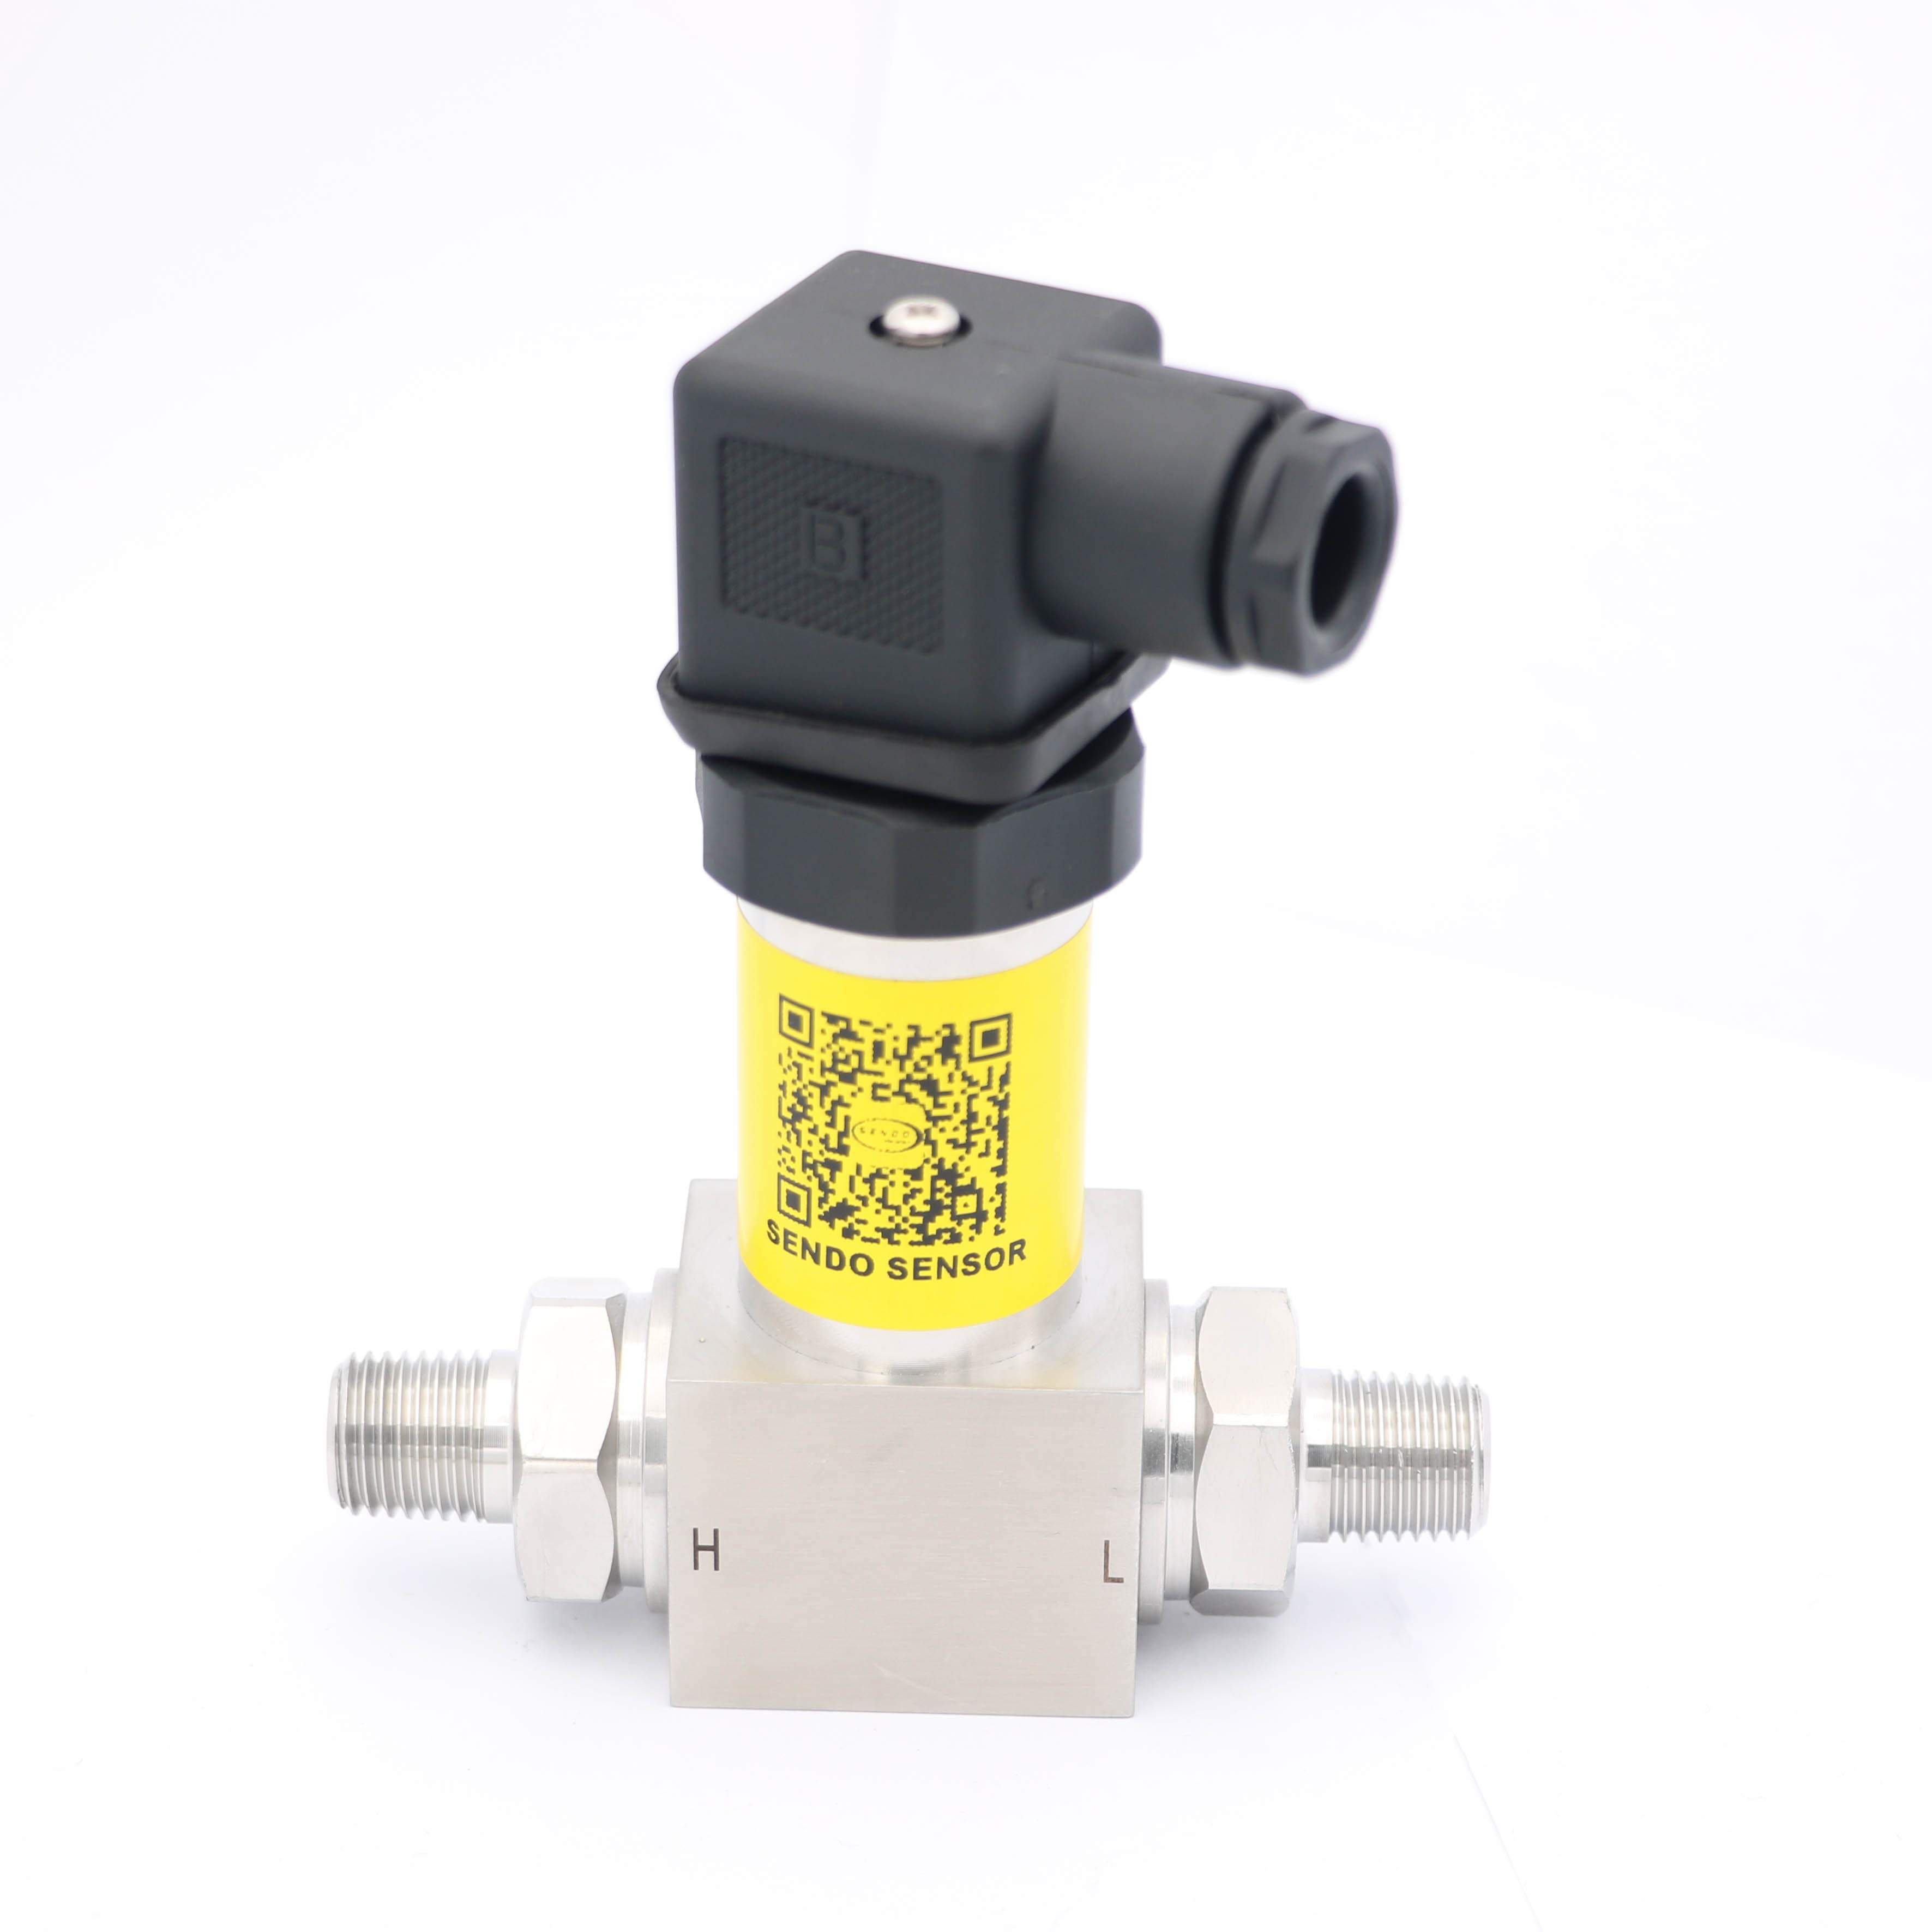 4-20mA, 0-10V, 0-5V, 0.5-4.5V differential pressure transmitter, male pressure port, dp sensors 0.2, 0.35, <font><b>1</b></font>, 4, 6, <font><b>10</b></font>, <font><b>25</b></font> bar image